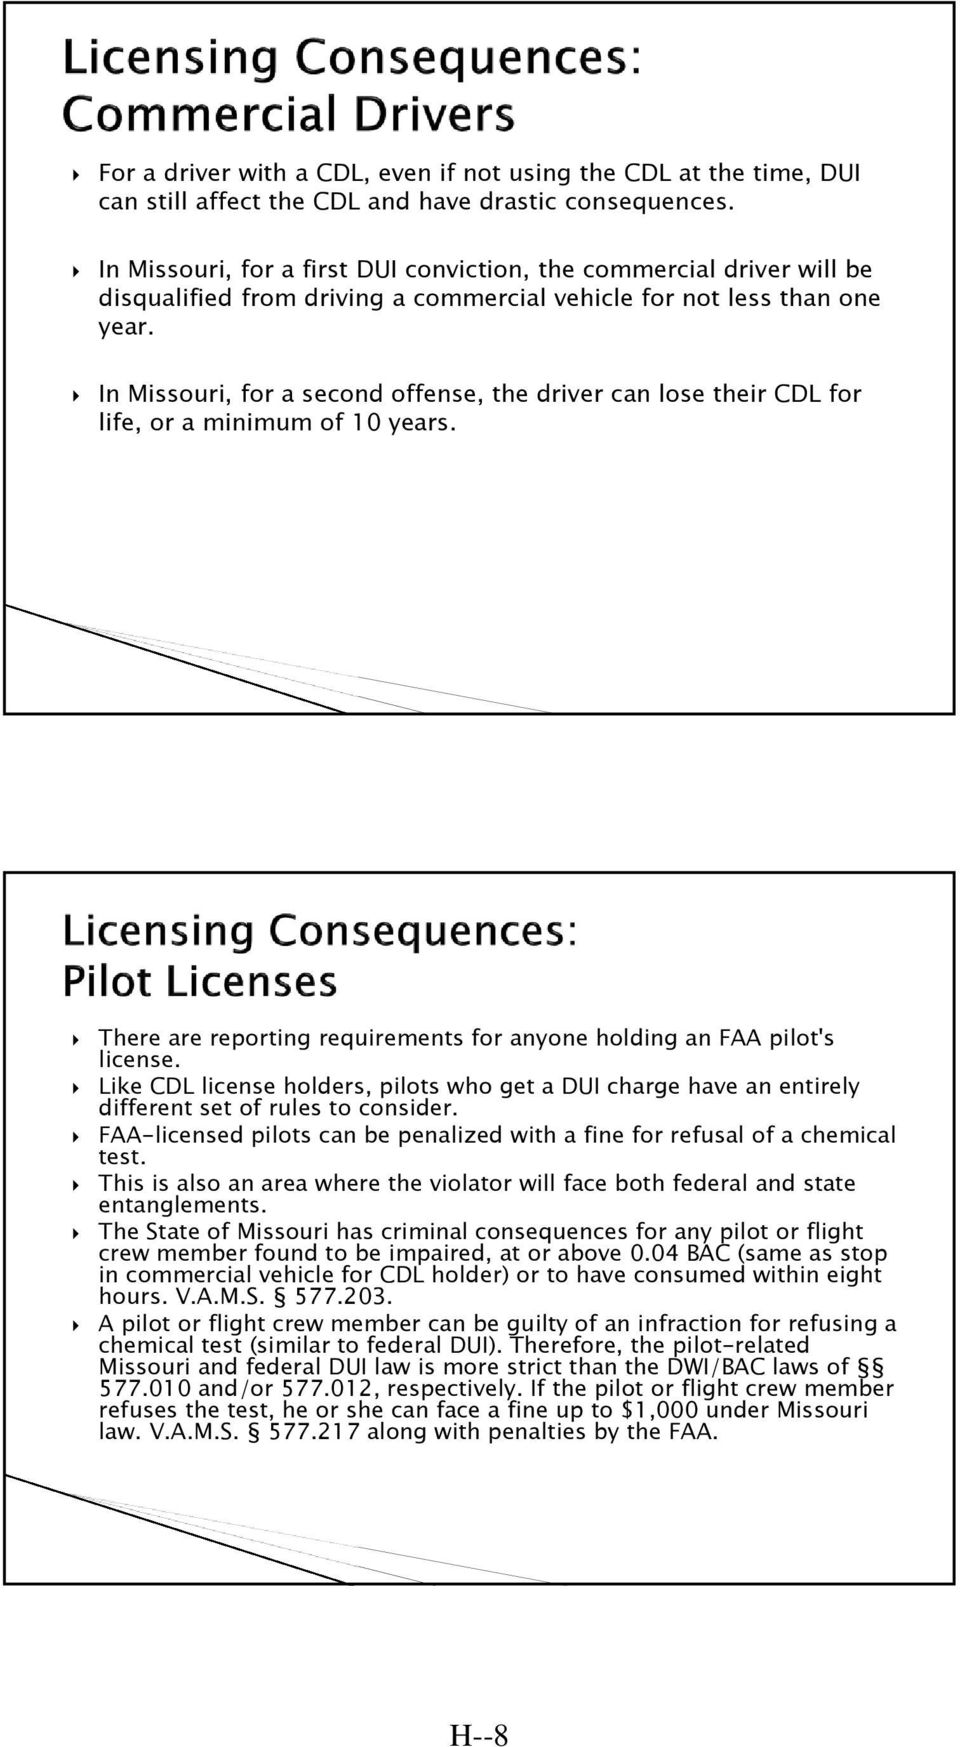 In Missouri, for a second offense, the driver can lose their CDL for life, or a minimum of 10 years. There are reporting requirements for anyone holding an FAA pilot's license.